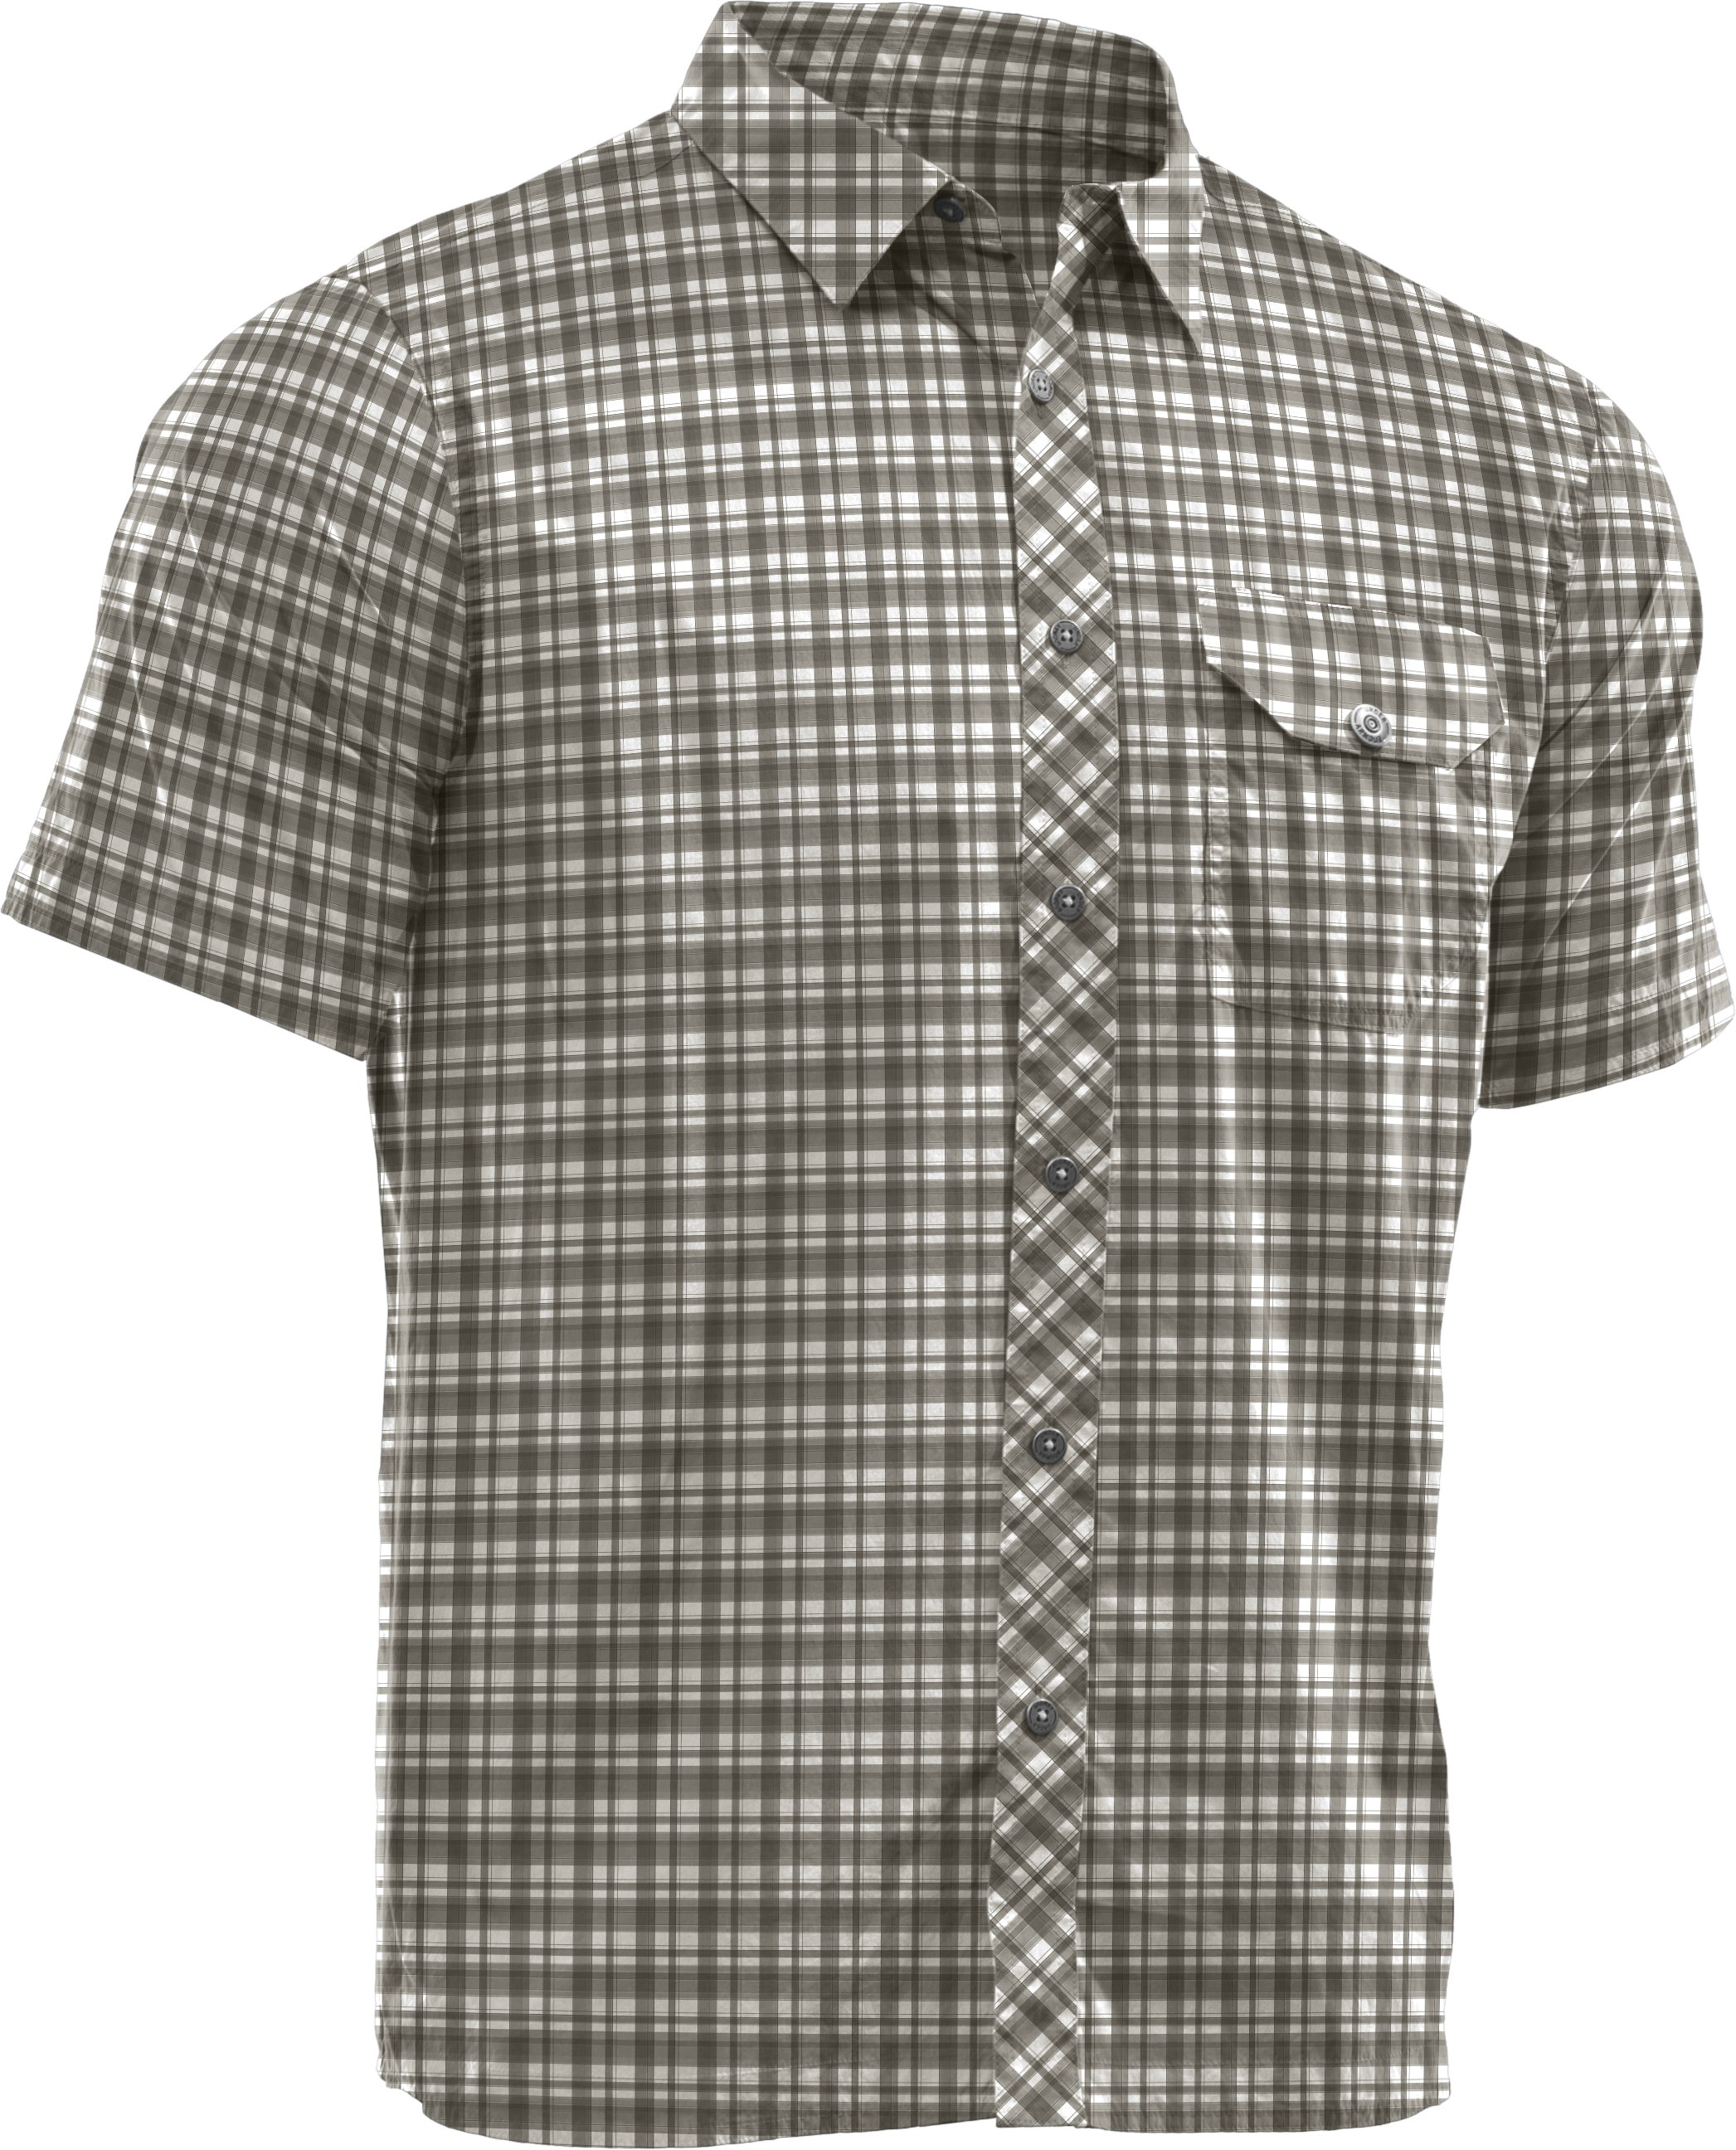 Men's Charged Cotton® Plaid Shirt, Rifle Green